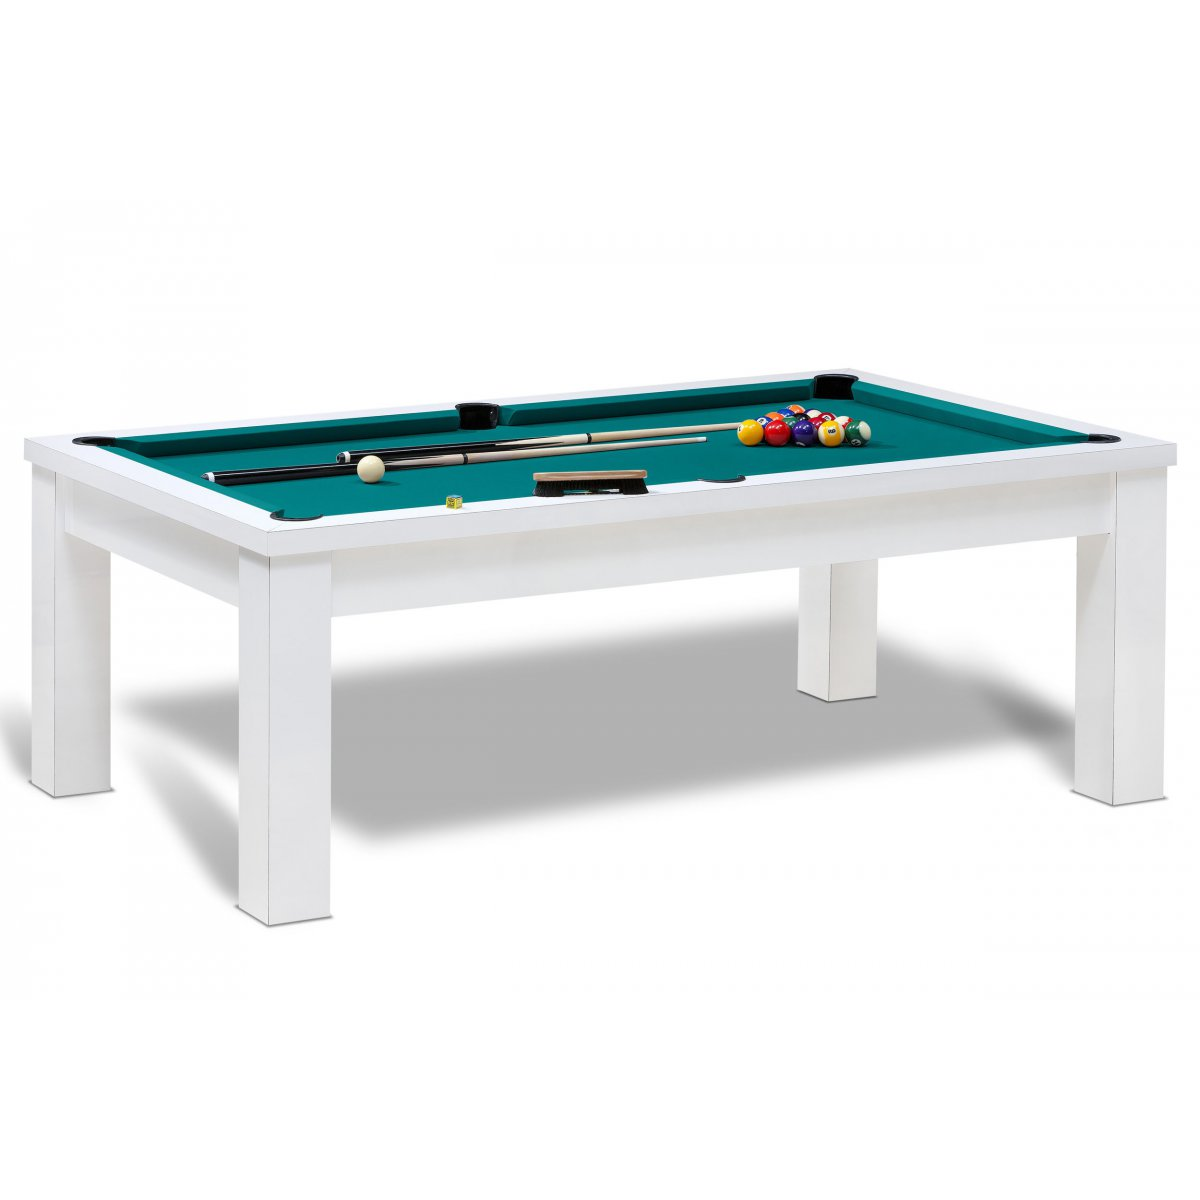 billard am ricain et billard table pour jeux americain us. Black Bedroom Furniture Sets. Home Design Ideas